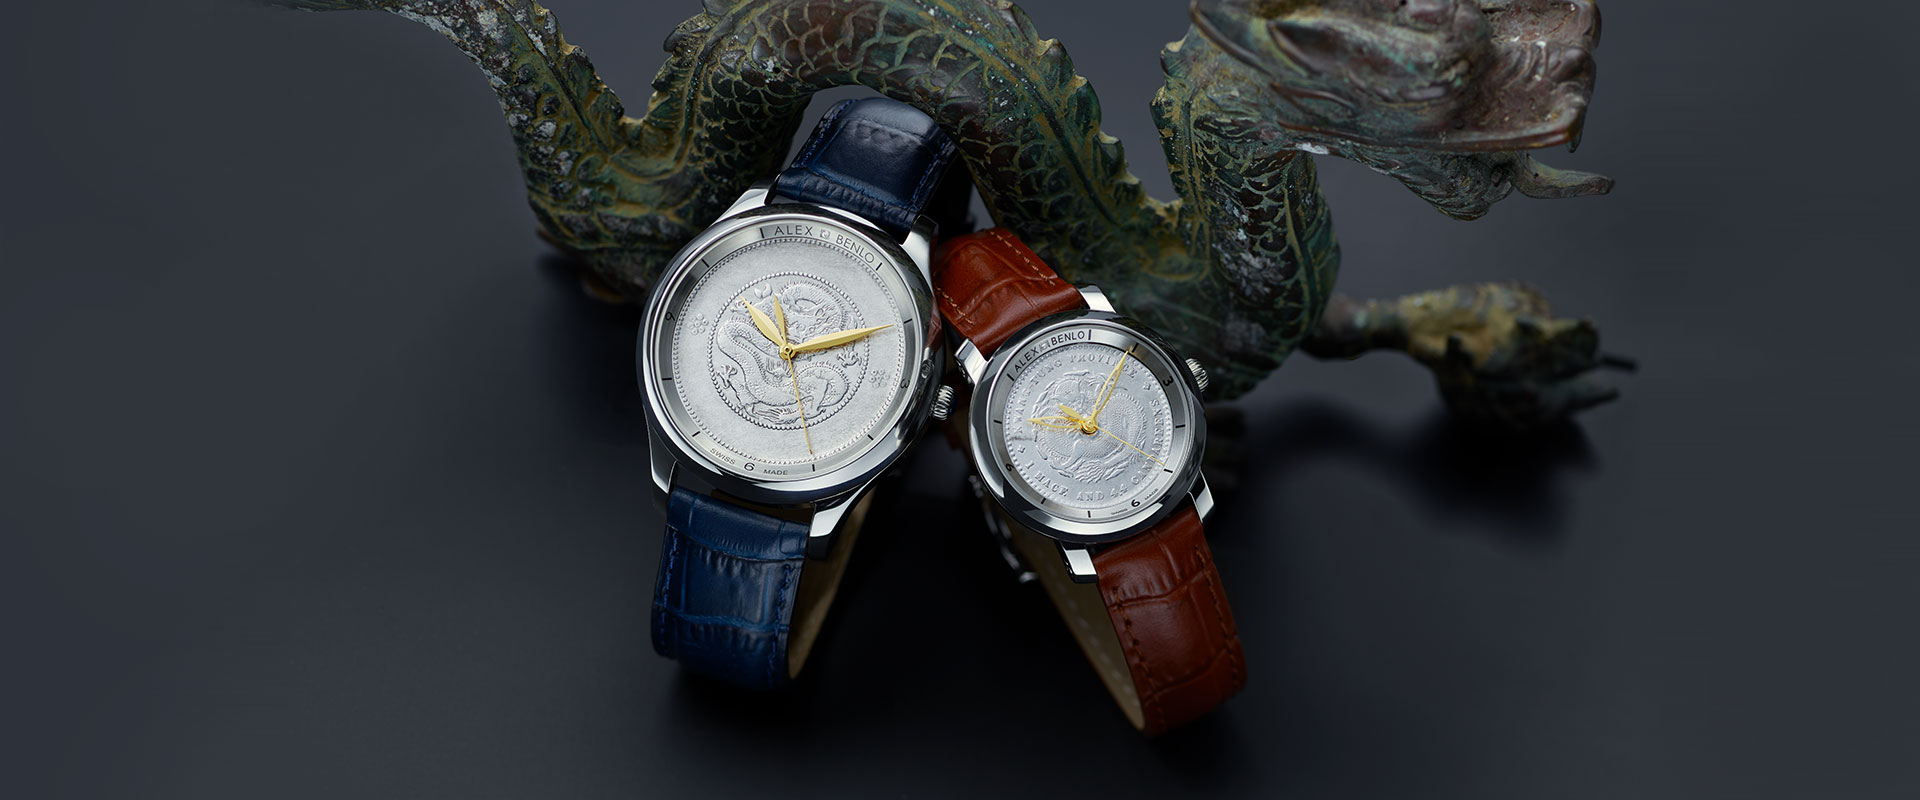 Alex Benlo - Natural Stone Watches - Silver Dragon Collection